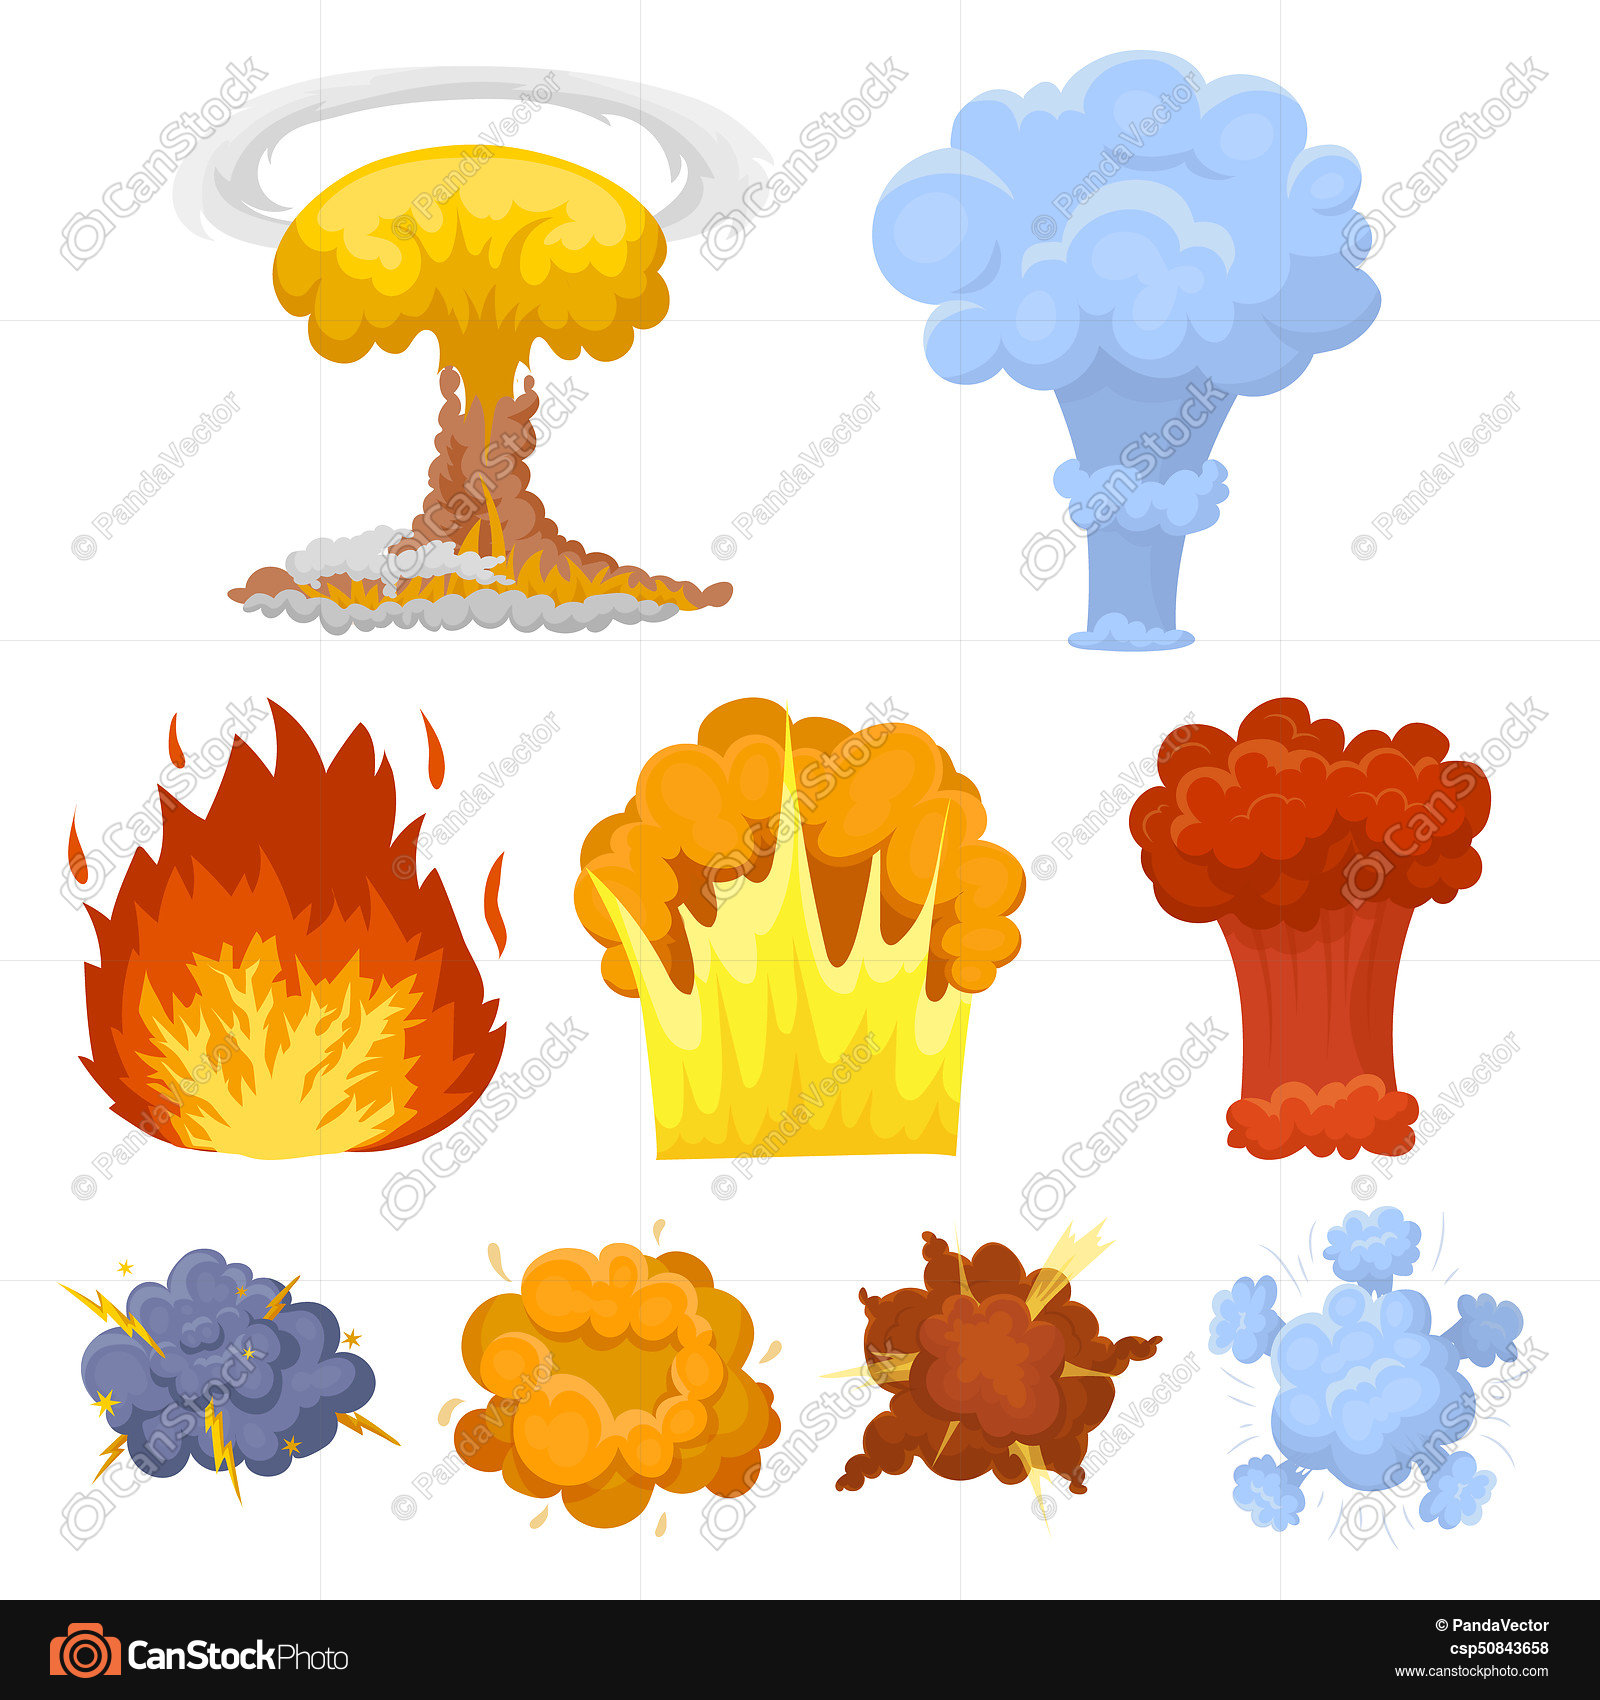 Smoke explosion clipart image library library Explosion clipart explosion smoke - 137 transparent clip ... image library library